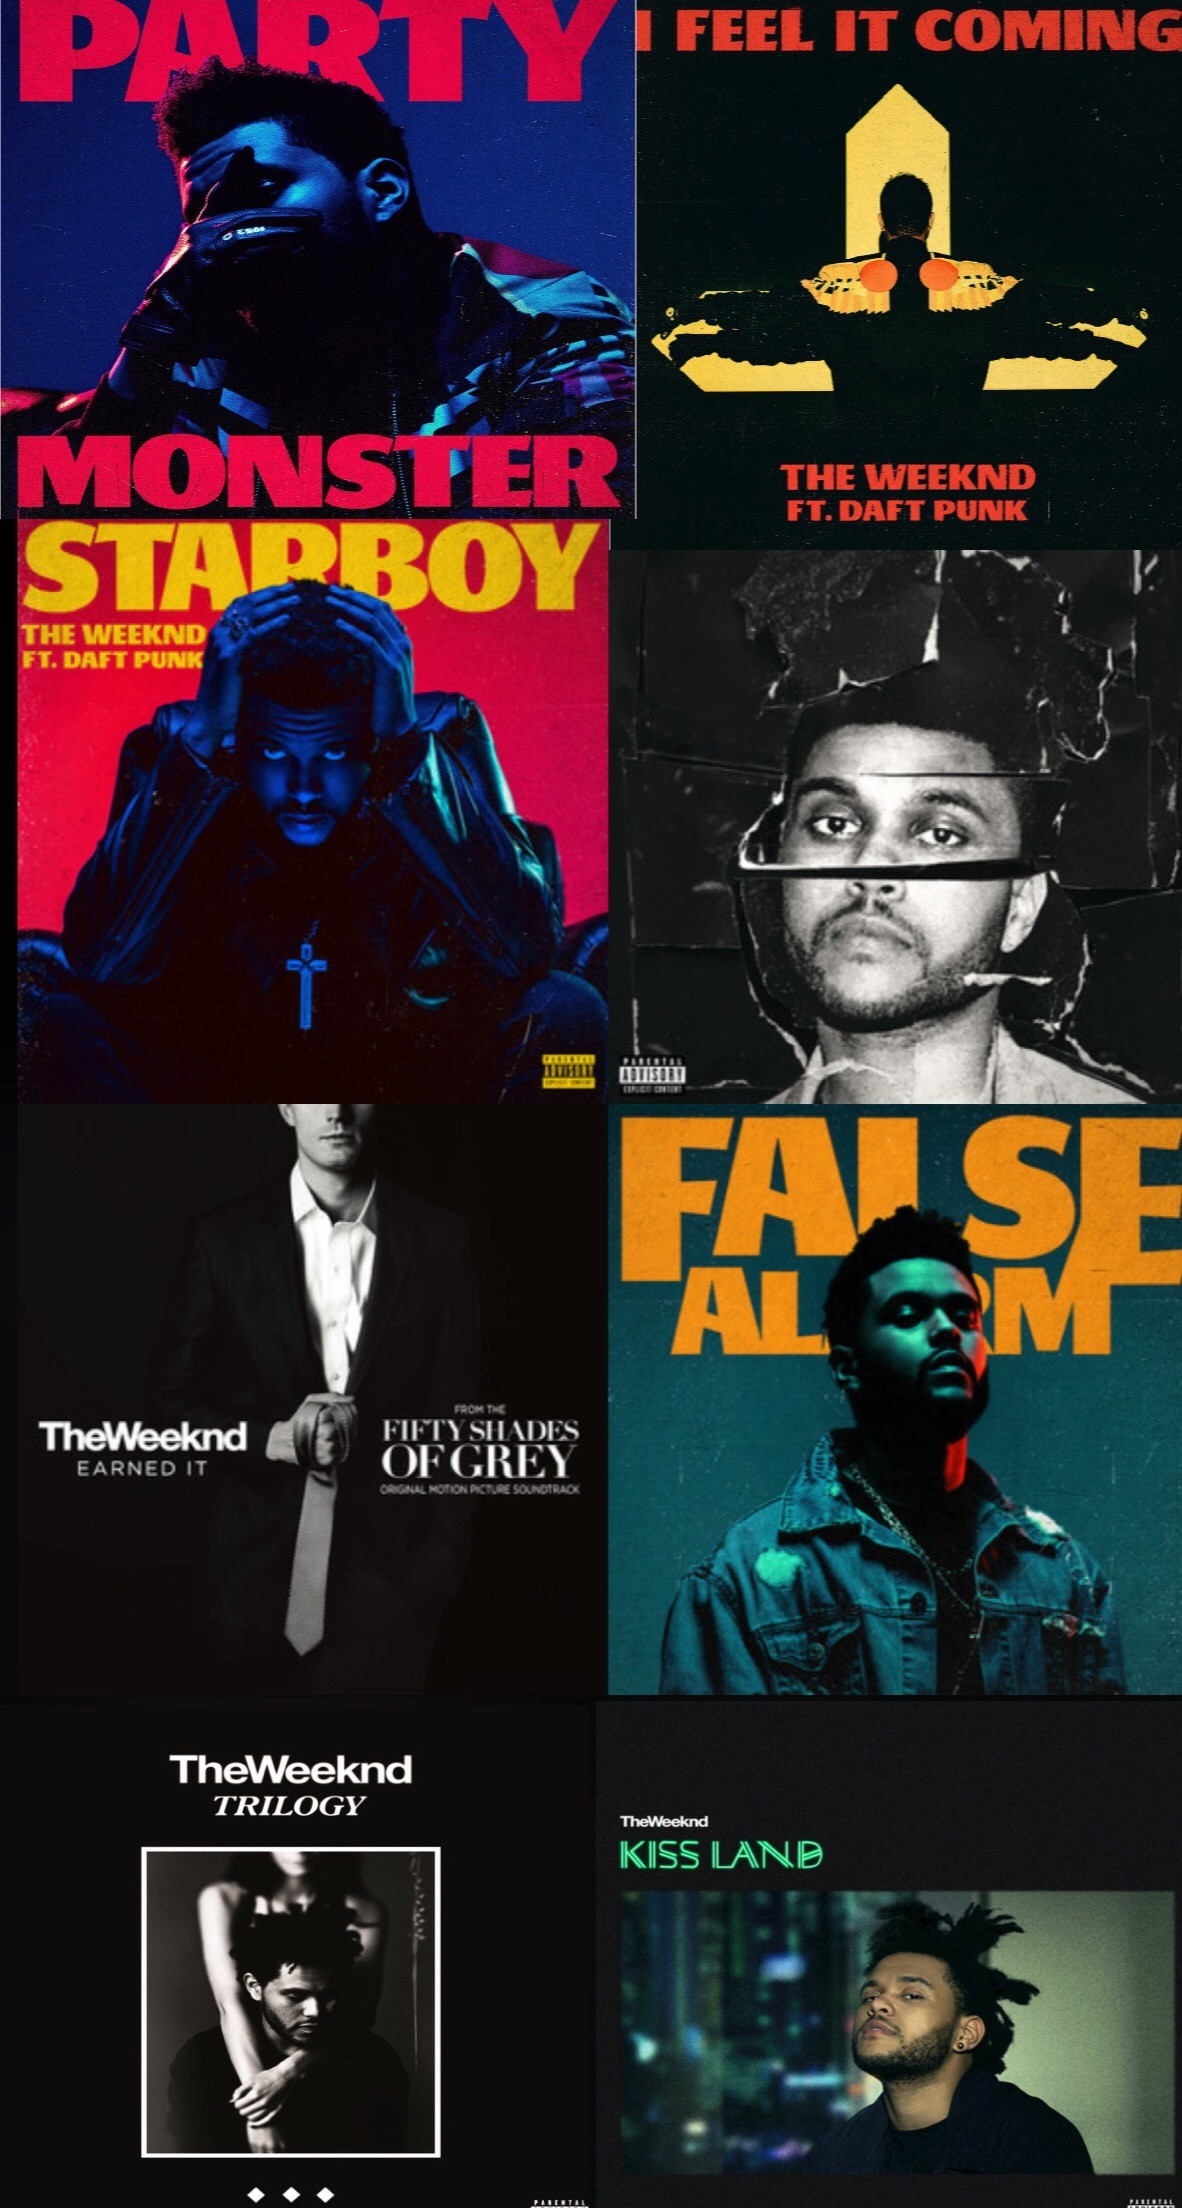 Art. Some of the greatest songs he is known for.